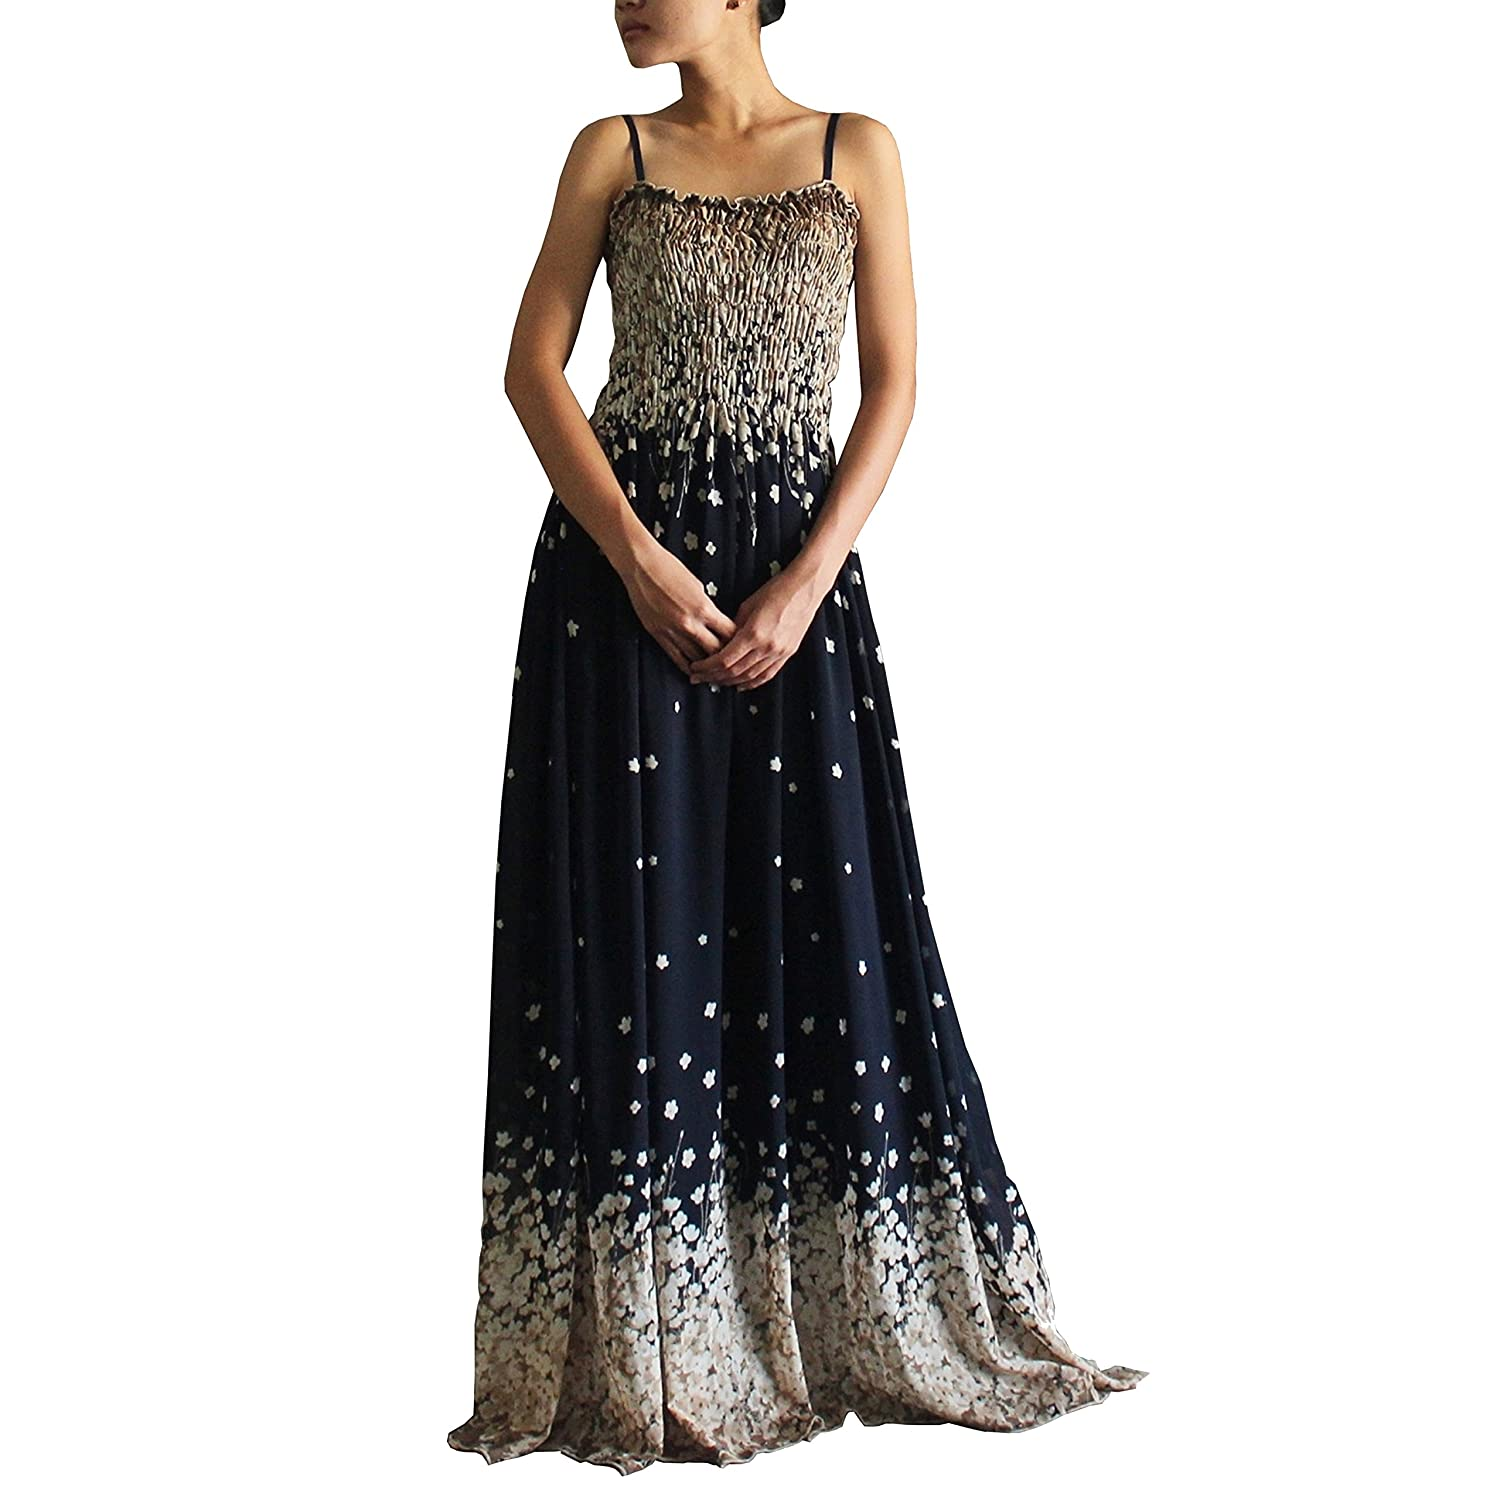 5857803a223f Women Maxi Floral Summer Dress Party Cocktail Boho Plus Size Casual Navy  Smocked at Amazon Women s Clothing store